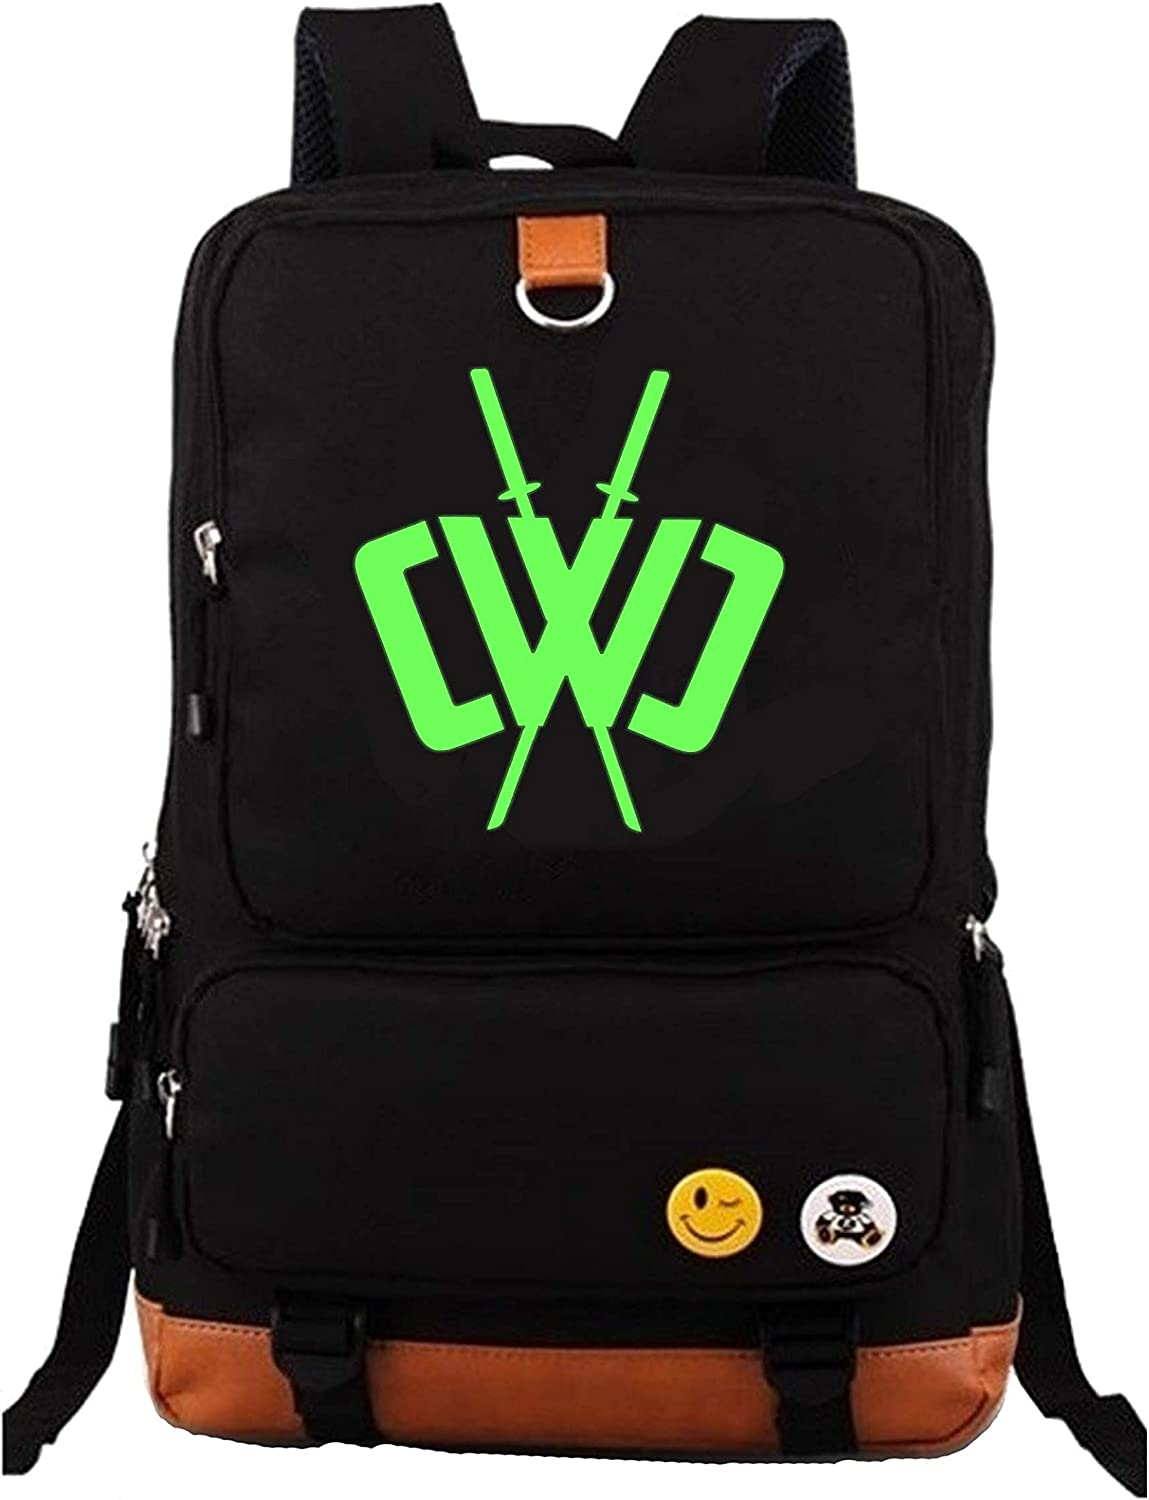 Men's and Women's Travel Backpack